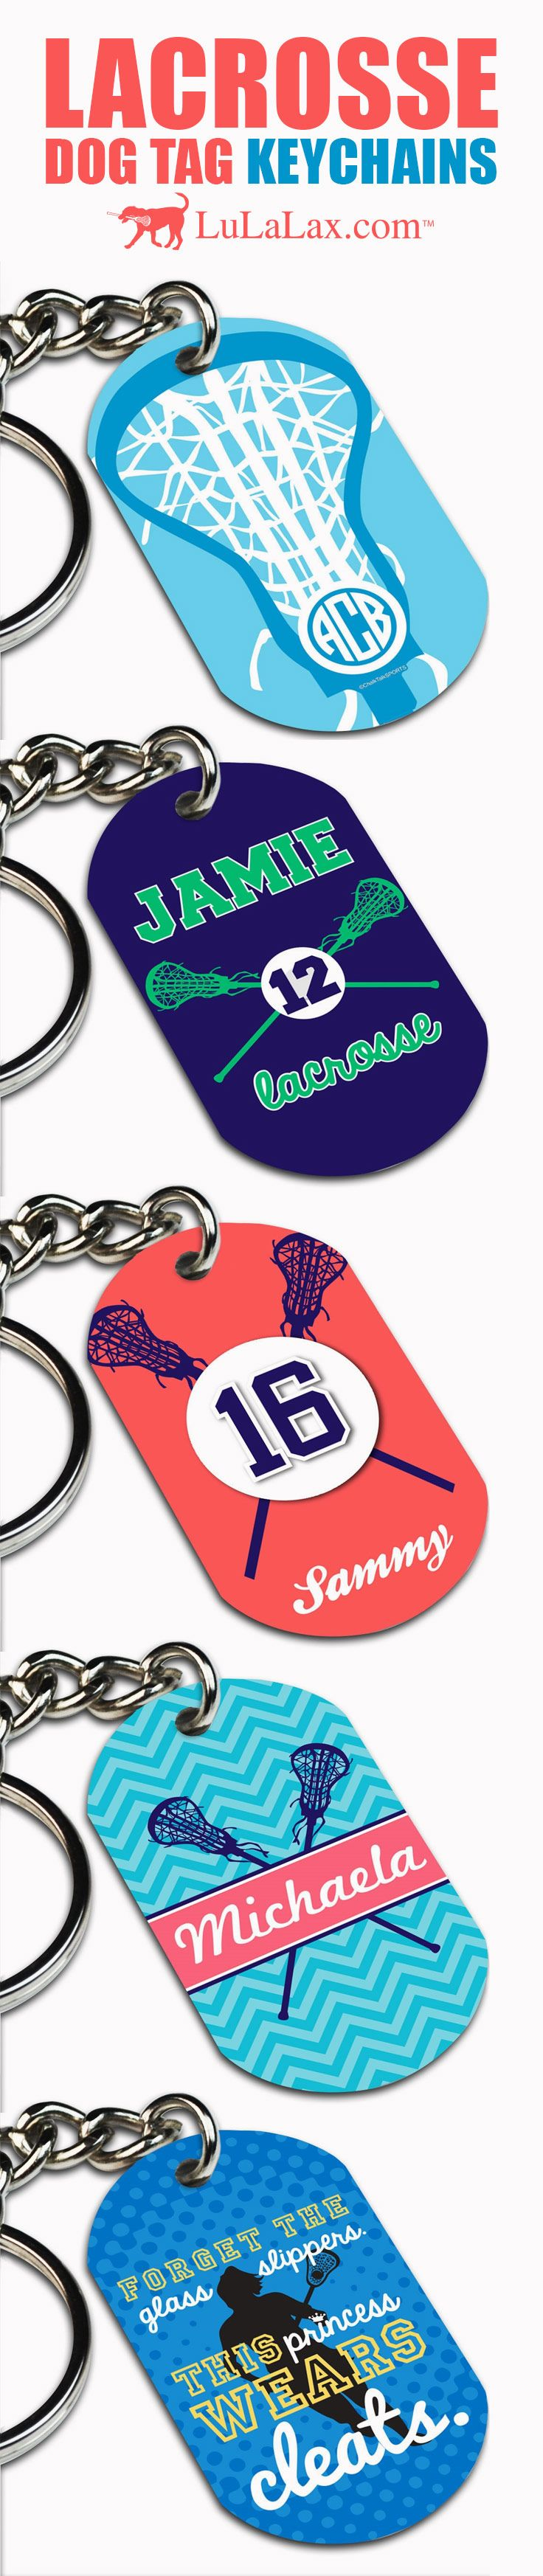 Your keys will easily stand out if you have one of our Girls Lacrosse Dog Tag Keychains on them! They can be personalized and make great team gifts or party favors! LuLaLax.com